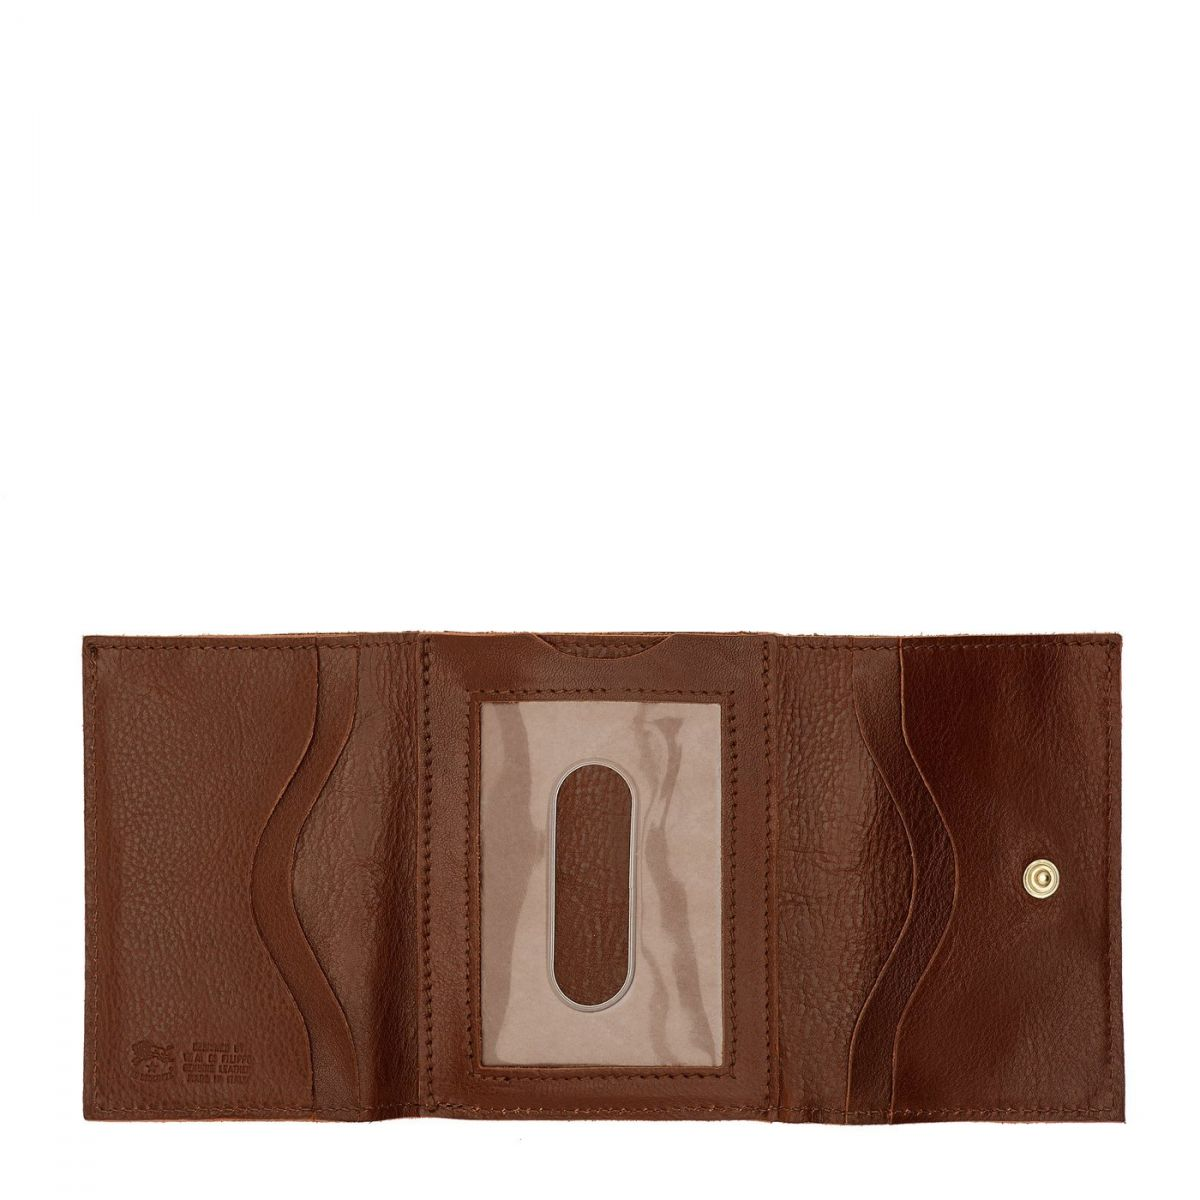 Wallet  in Cowhide Double Leather SMW036 color Brown | Details